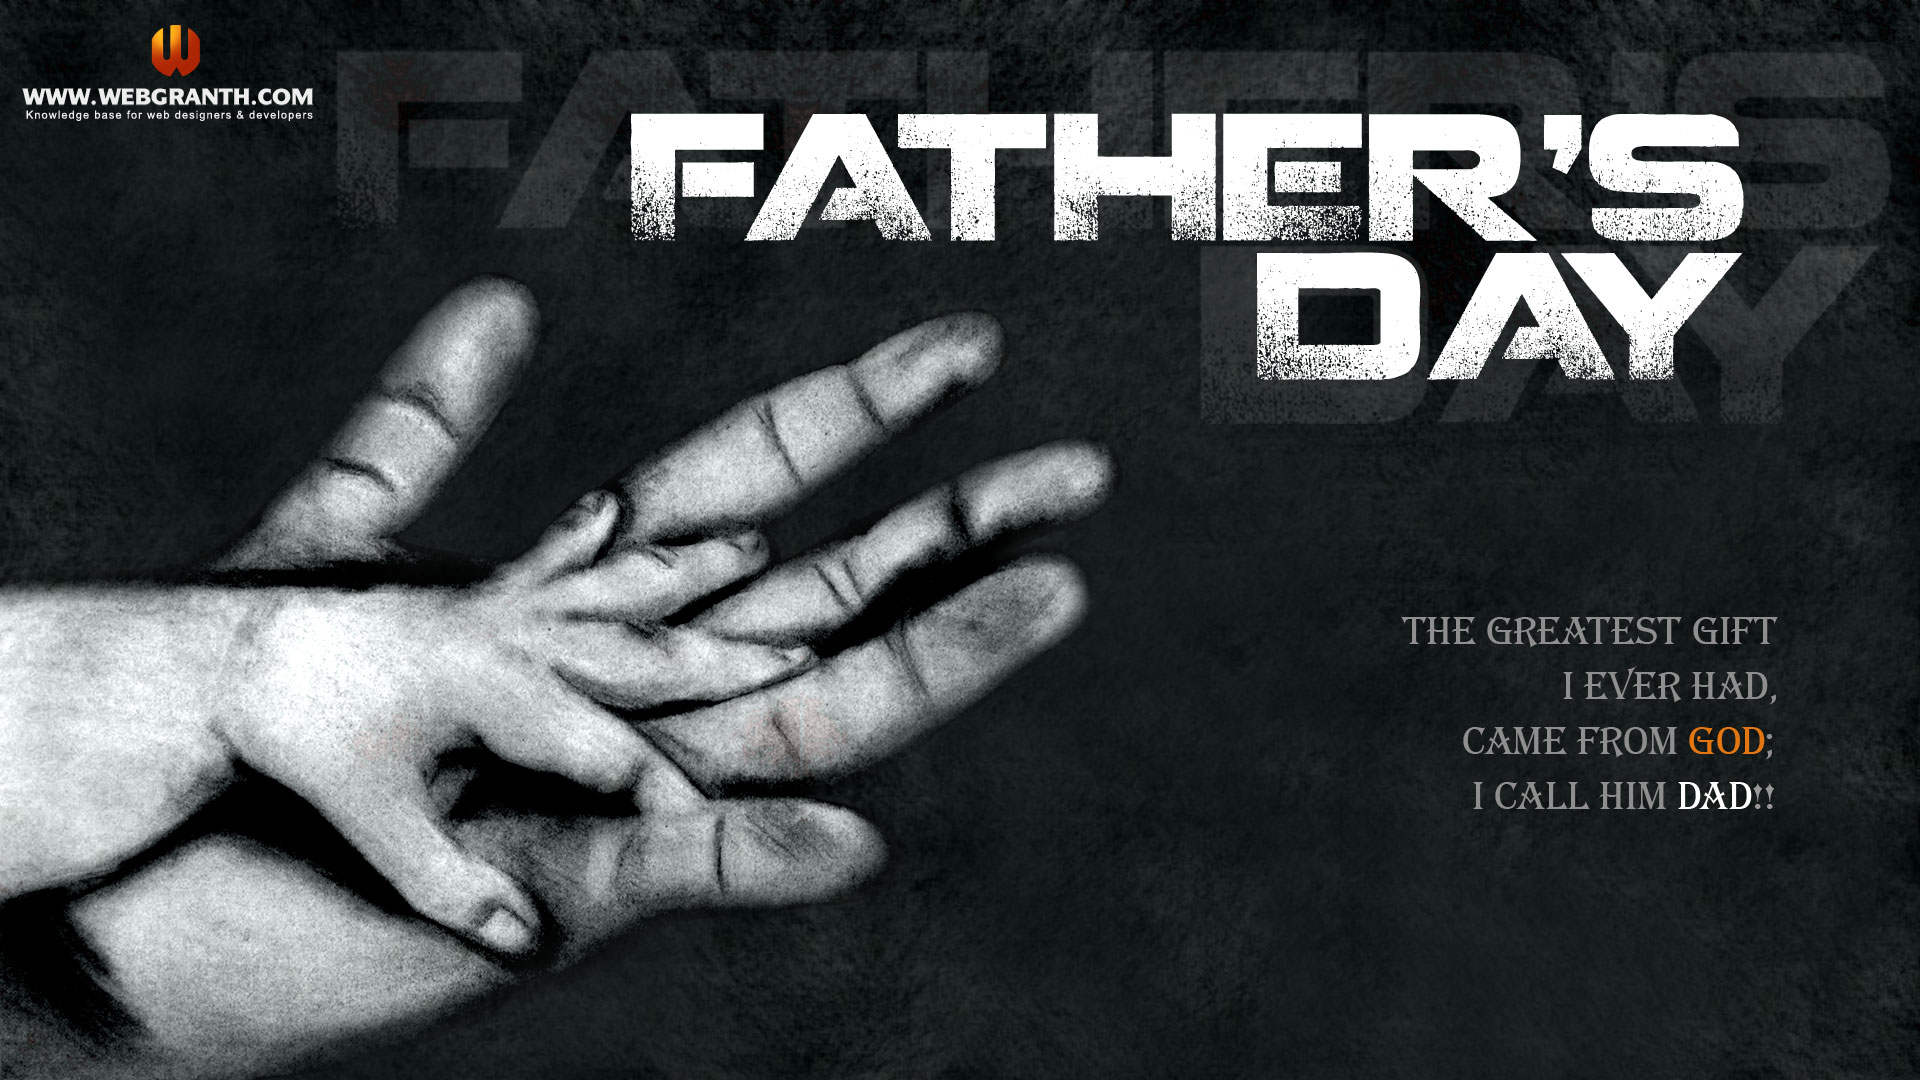 Download-Free-Fathers-Day-Desktop-background-wallpaper-wp3605013